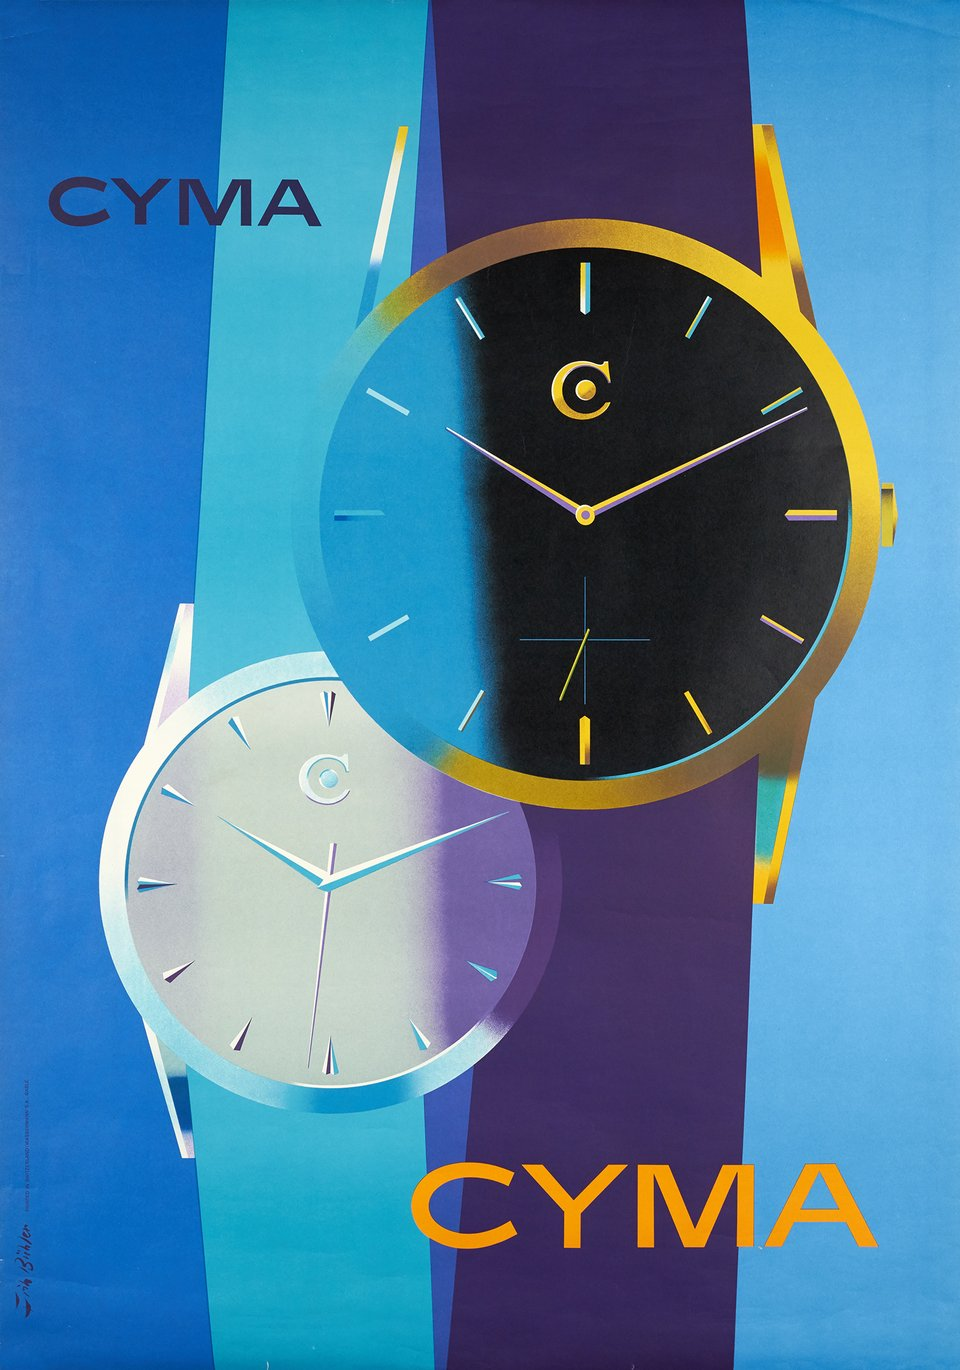 Cyma, Swiss watches – Vintage poster – Fritz BUHLER – 1958